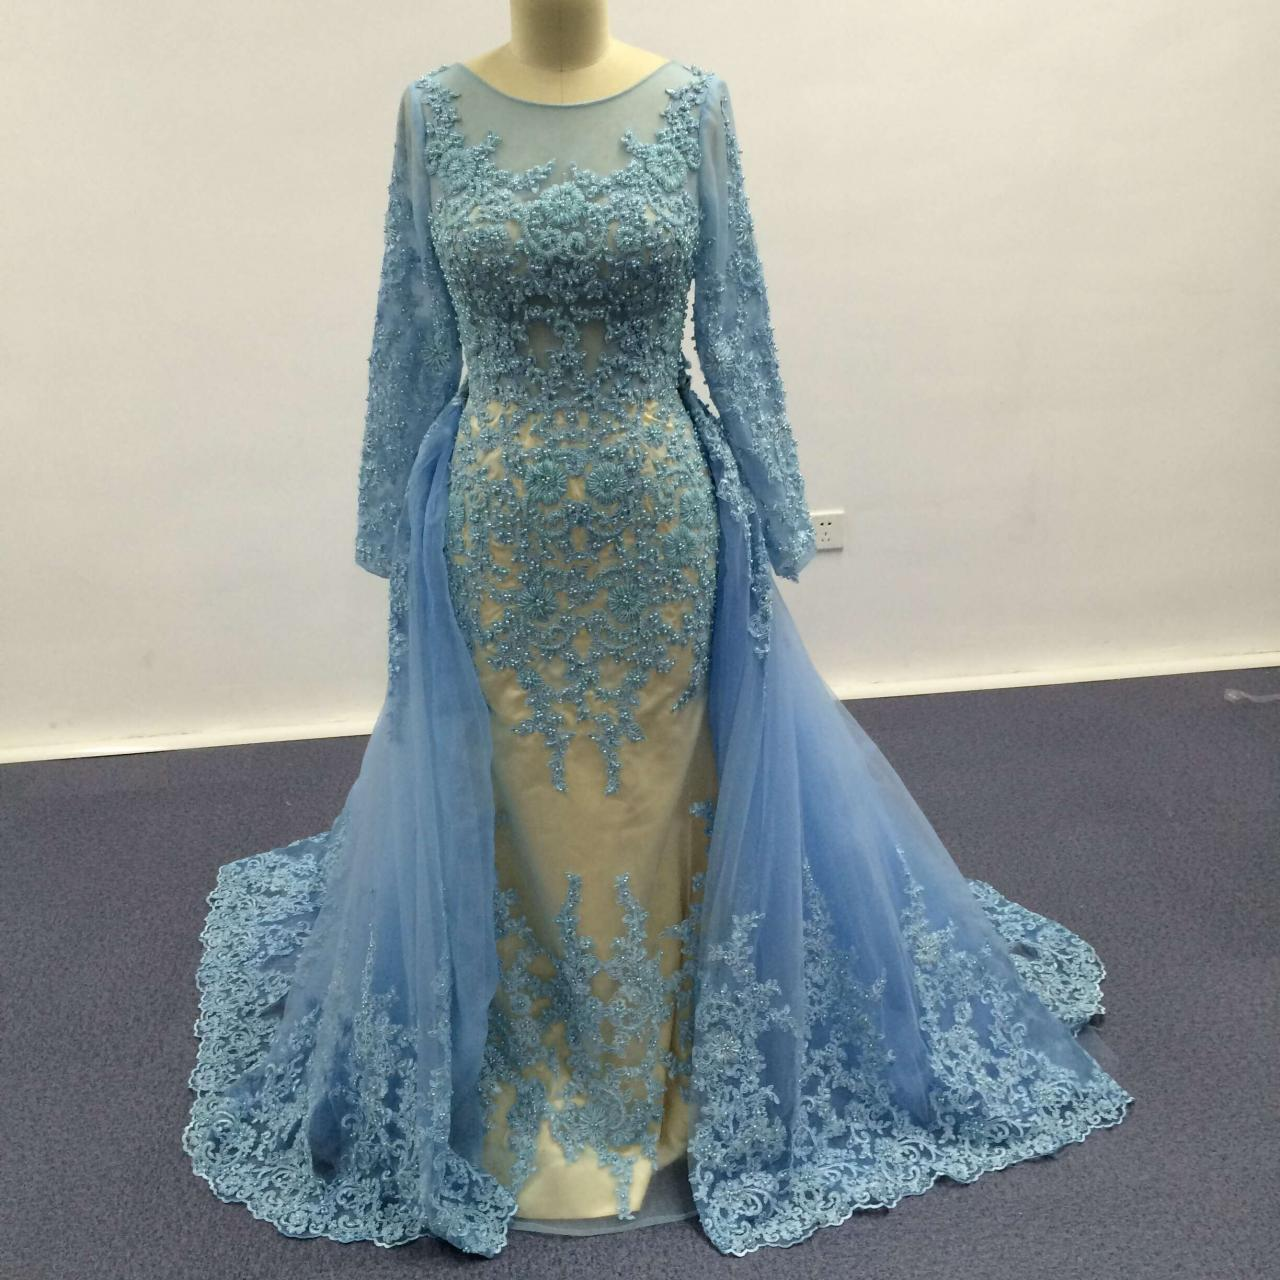 Removable Train Mermaid Evening Dress Formal Blue Tulle Party Prom Bridal Gowns